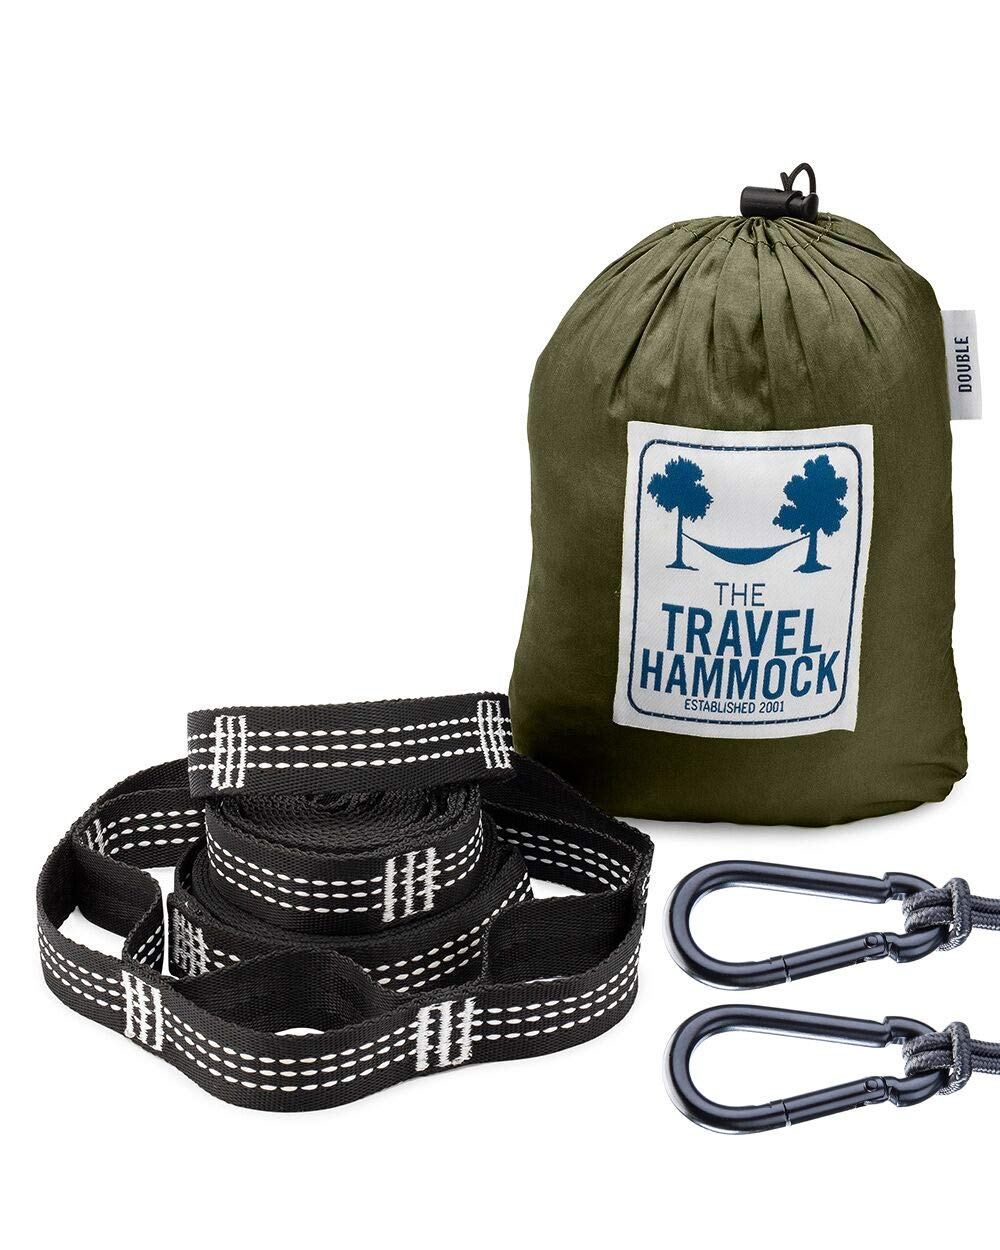 The Original Travel Hammock Double Hammock with Straps Lightweight Parachute Nylon Hammock, Best for Backpacking, Beach, Camping and Travel